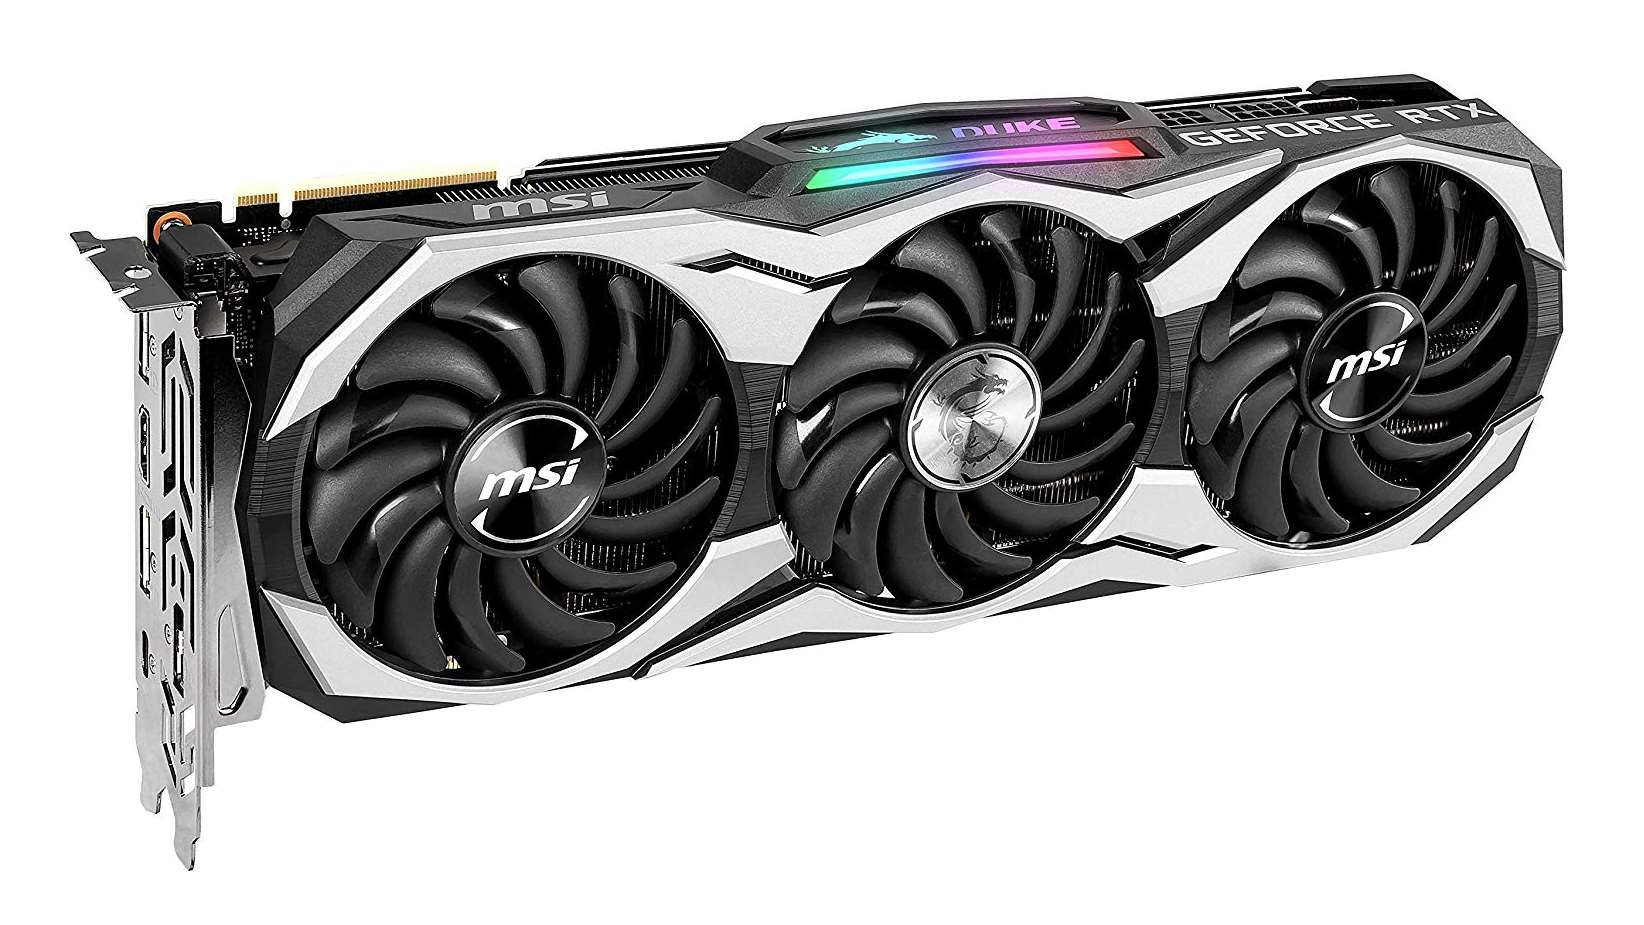 MSI RTX 2080 Duke review: gaming substance without the Nvidia style